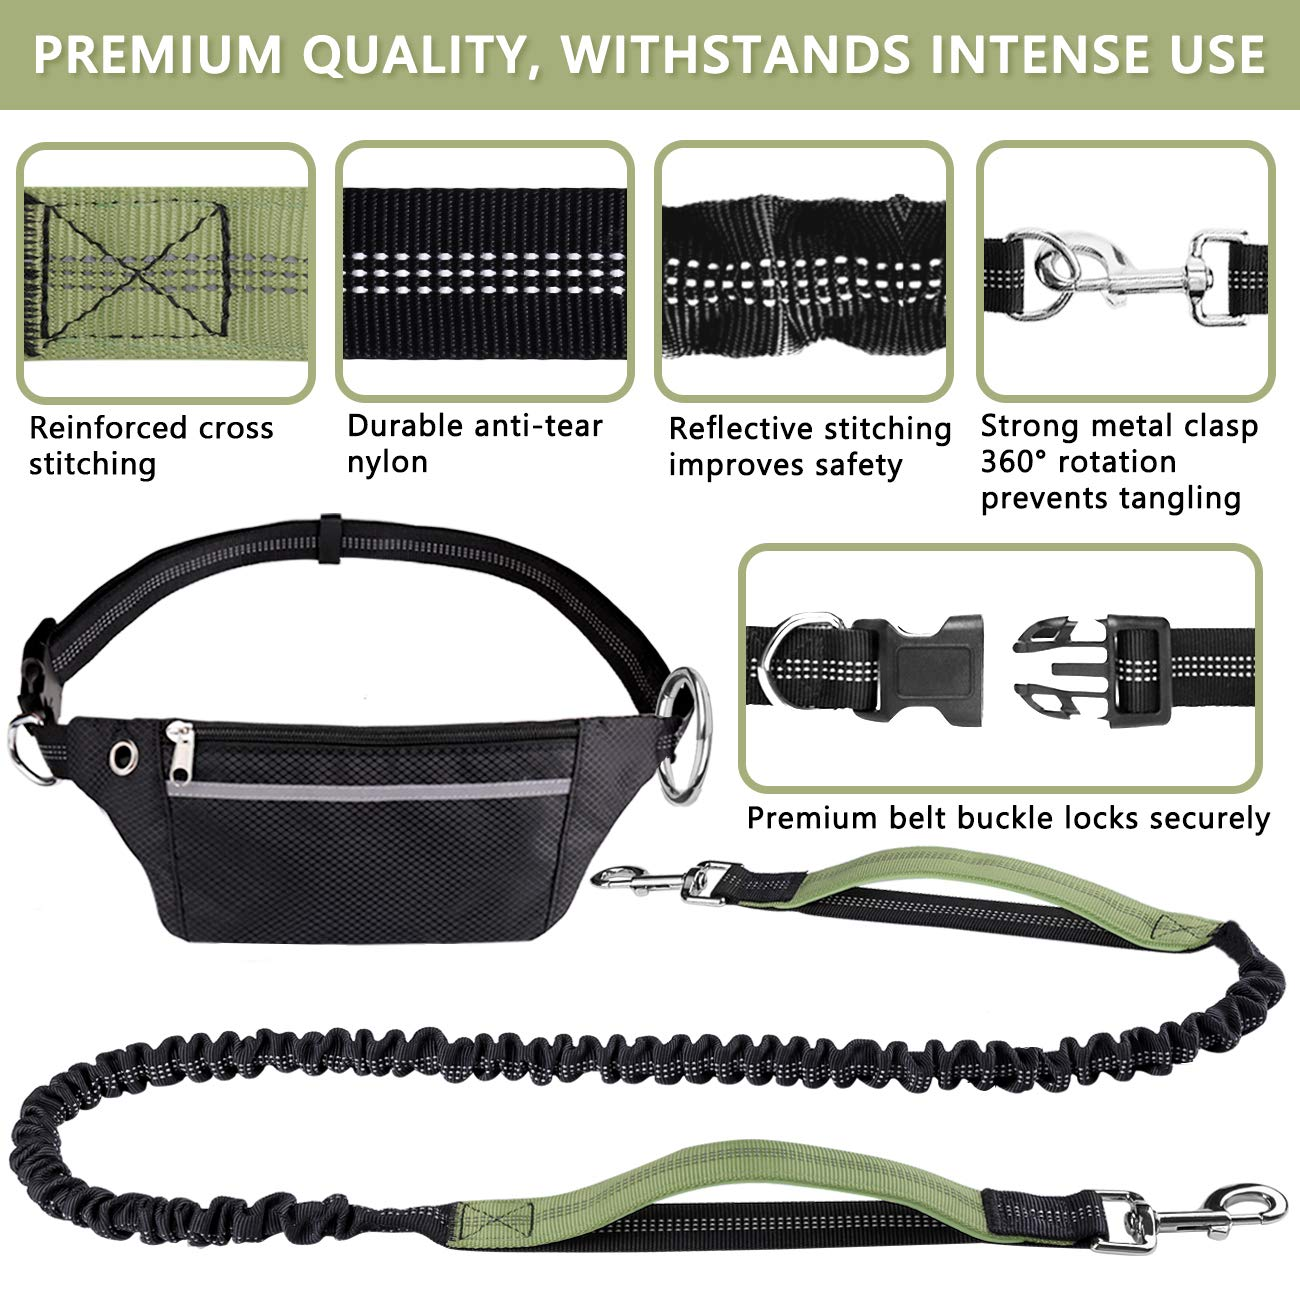 Retractable Bungee Dog Running Waist Leash for Medium to Large Dogs Dual Handle Adjustable Waist Belt Reflective Stitches LANNEY Hands Free Dog Leash for Running Walking Jogging Training Hiking